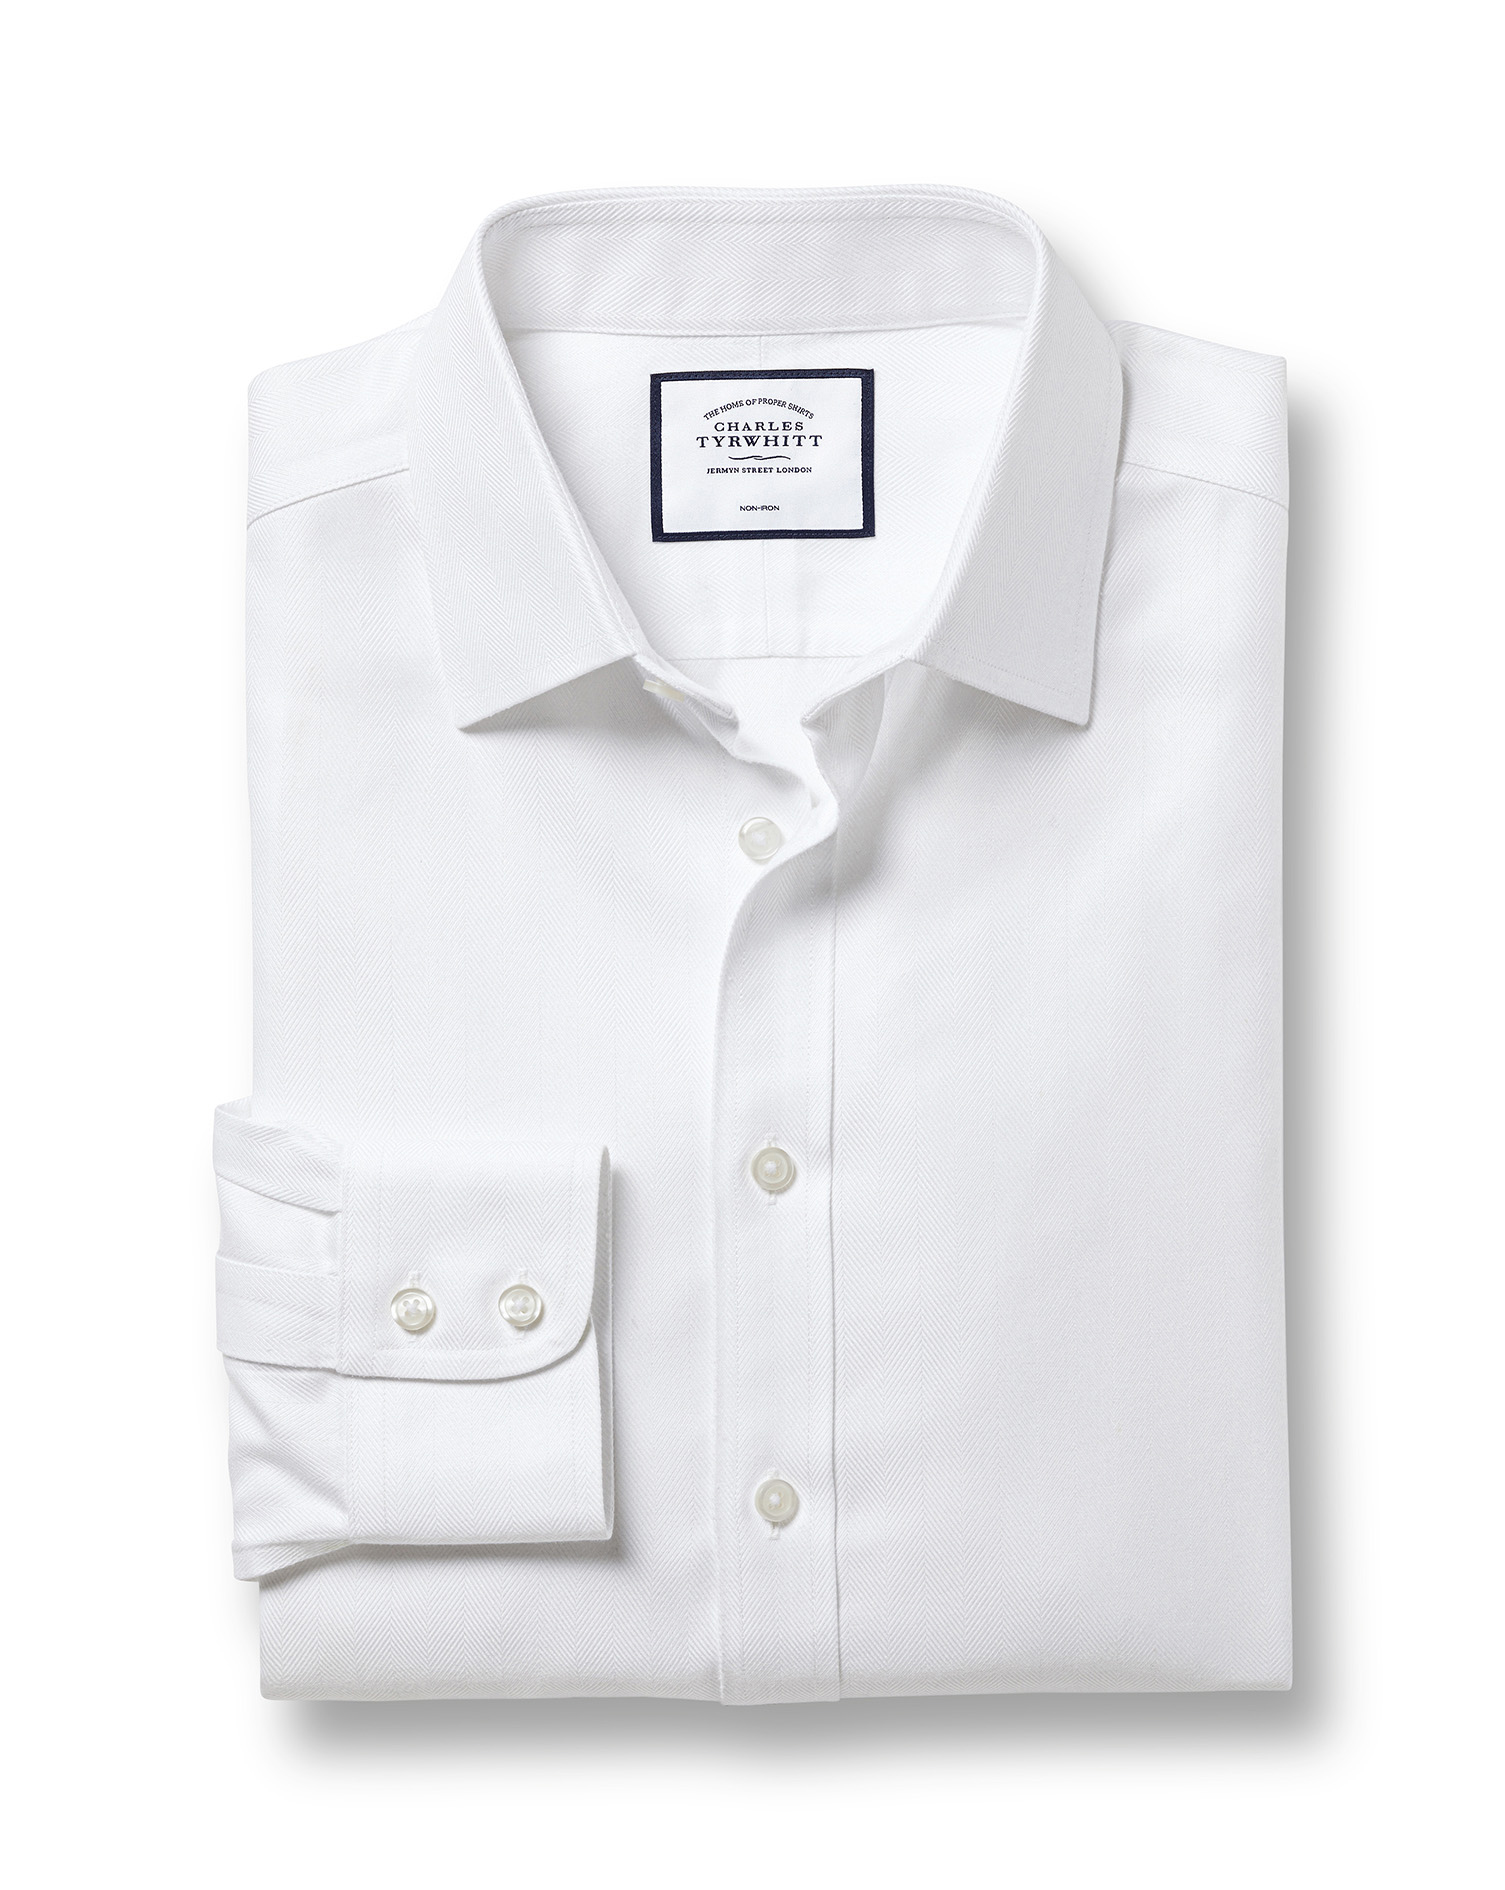 Classic Fit Non-Iron Herringbone White Cotton Formal Shirt Double Cuff Size 17/36 by Charles Tyrwhit